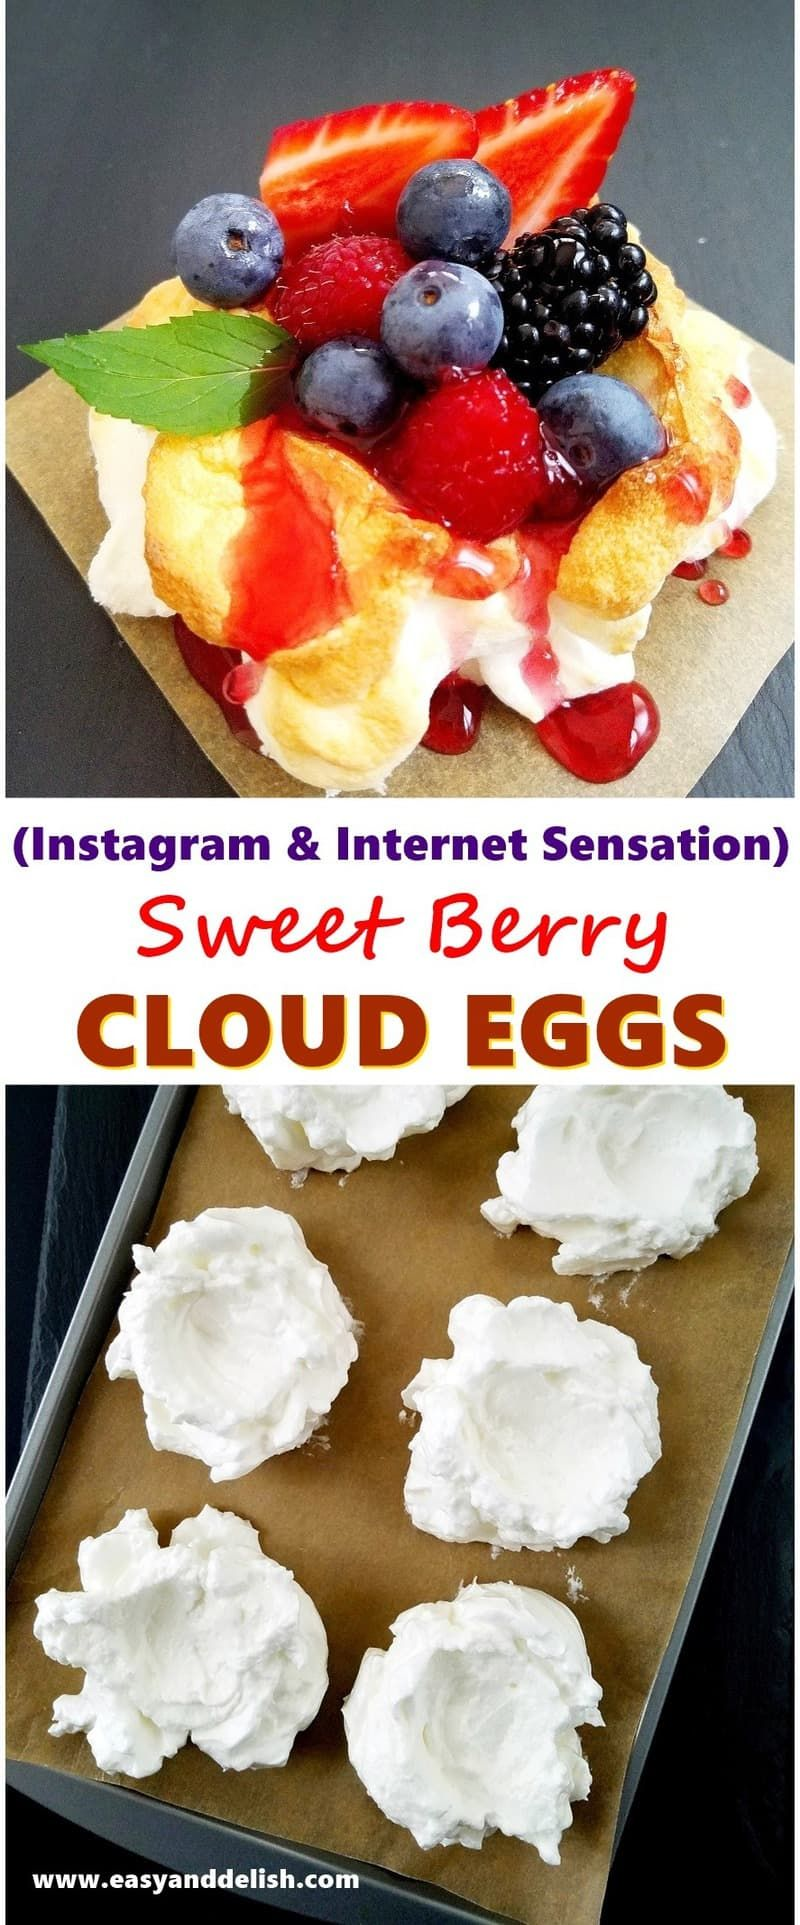 Quick and Easy Sweet Berry Cloud Eggs Recipe